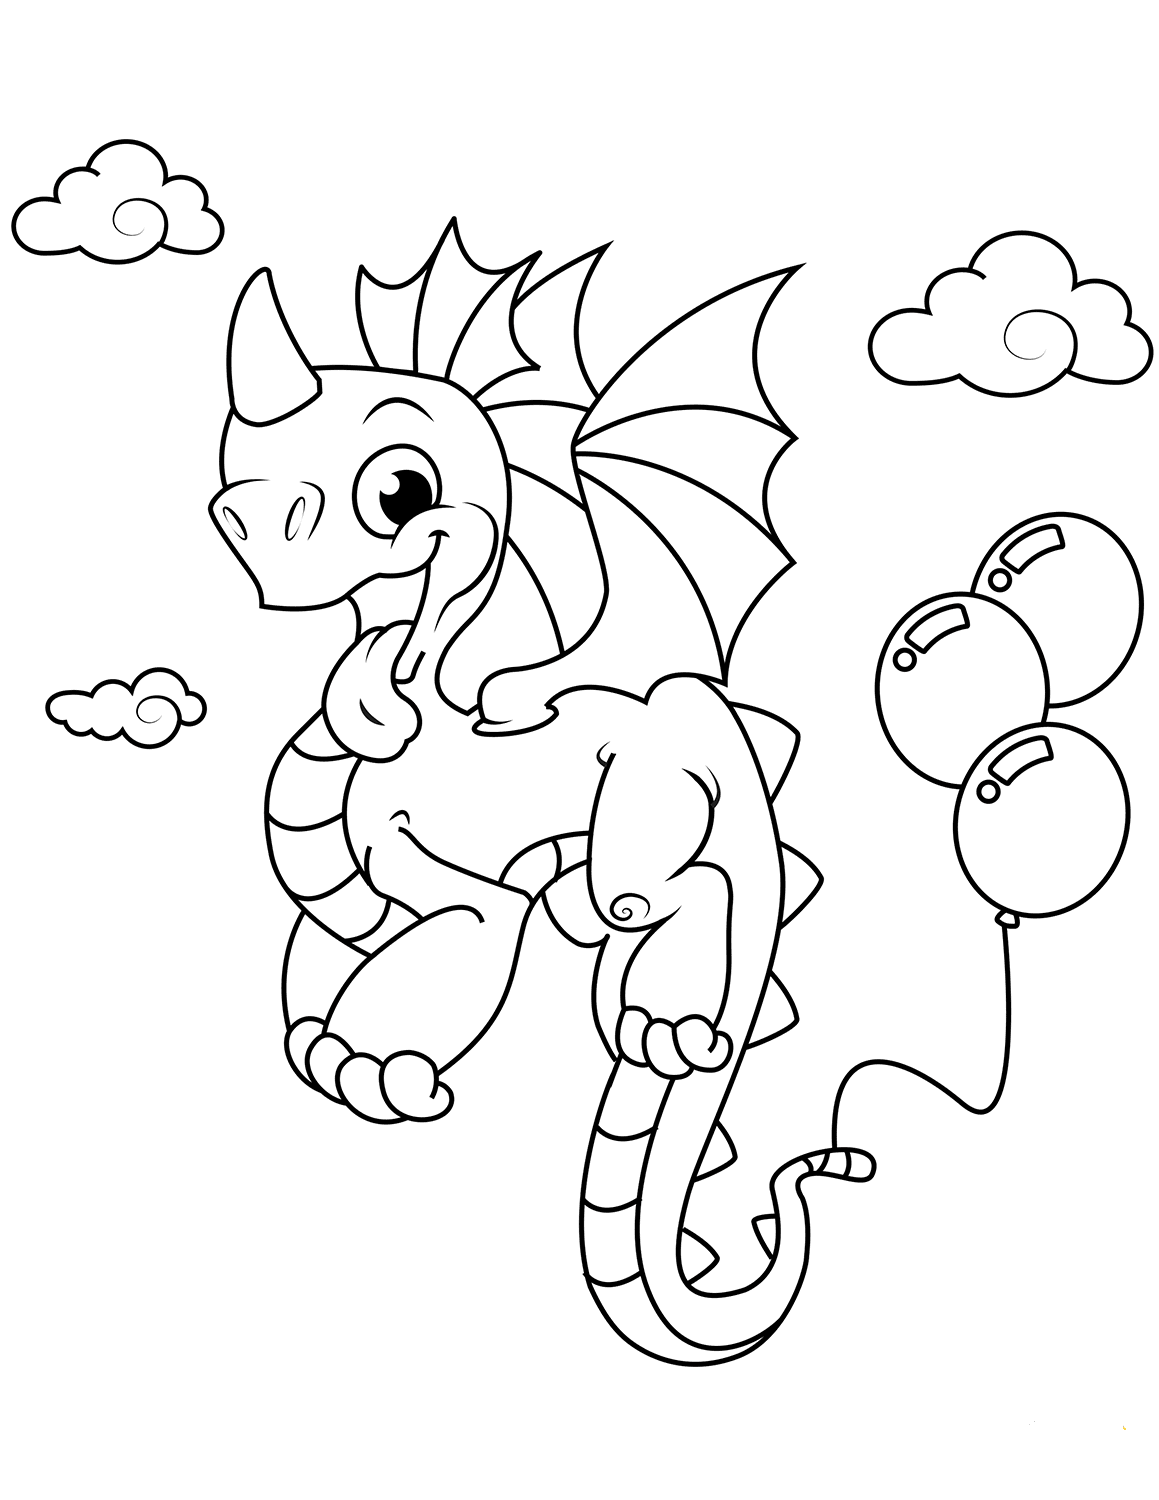 35 Free Printable Dragon Coloring Pages Scribblefun